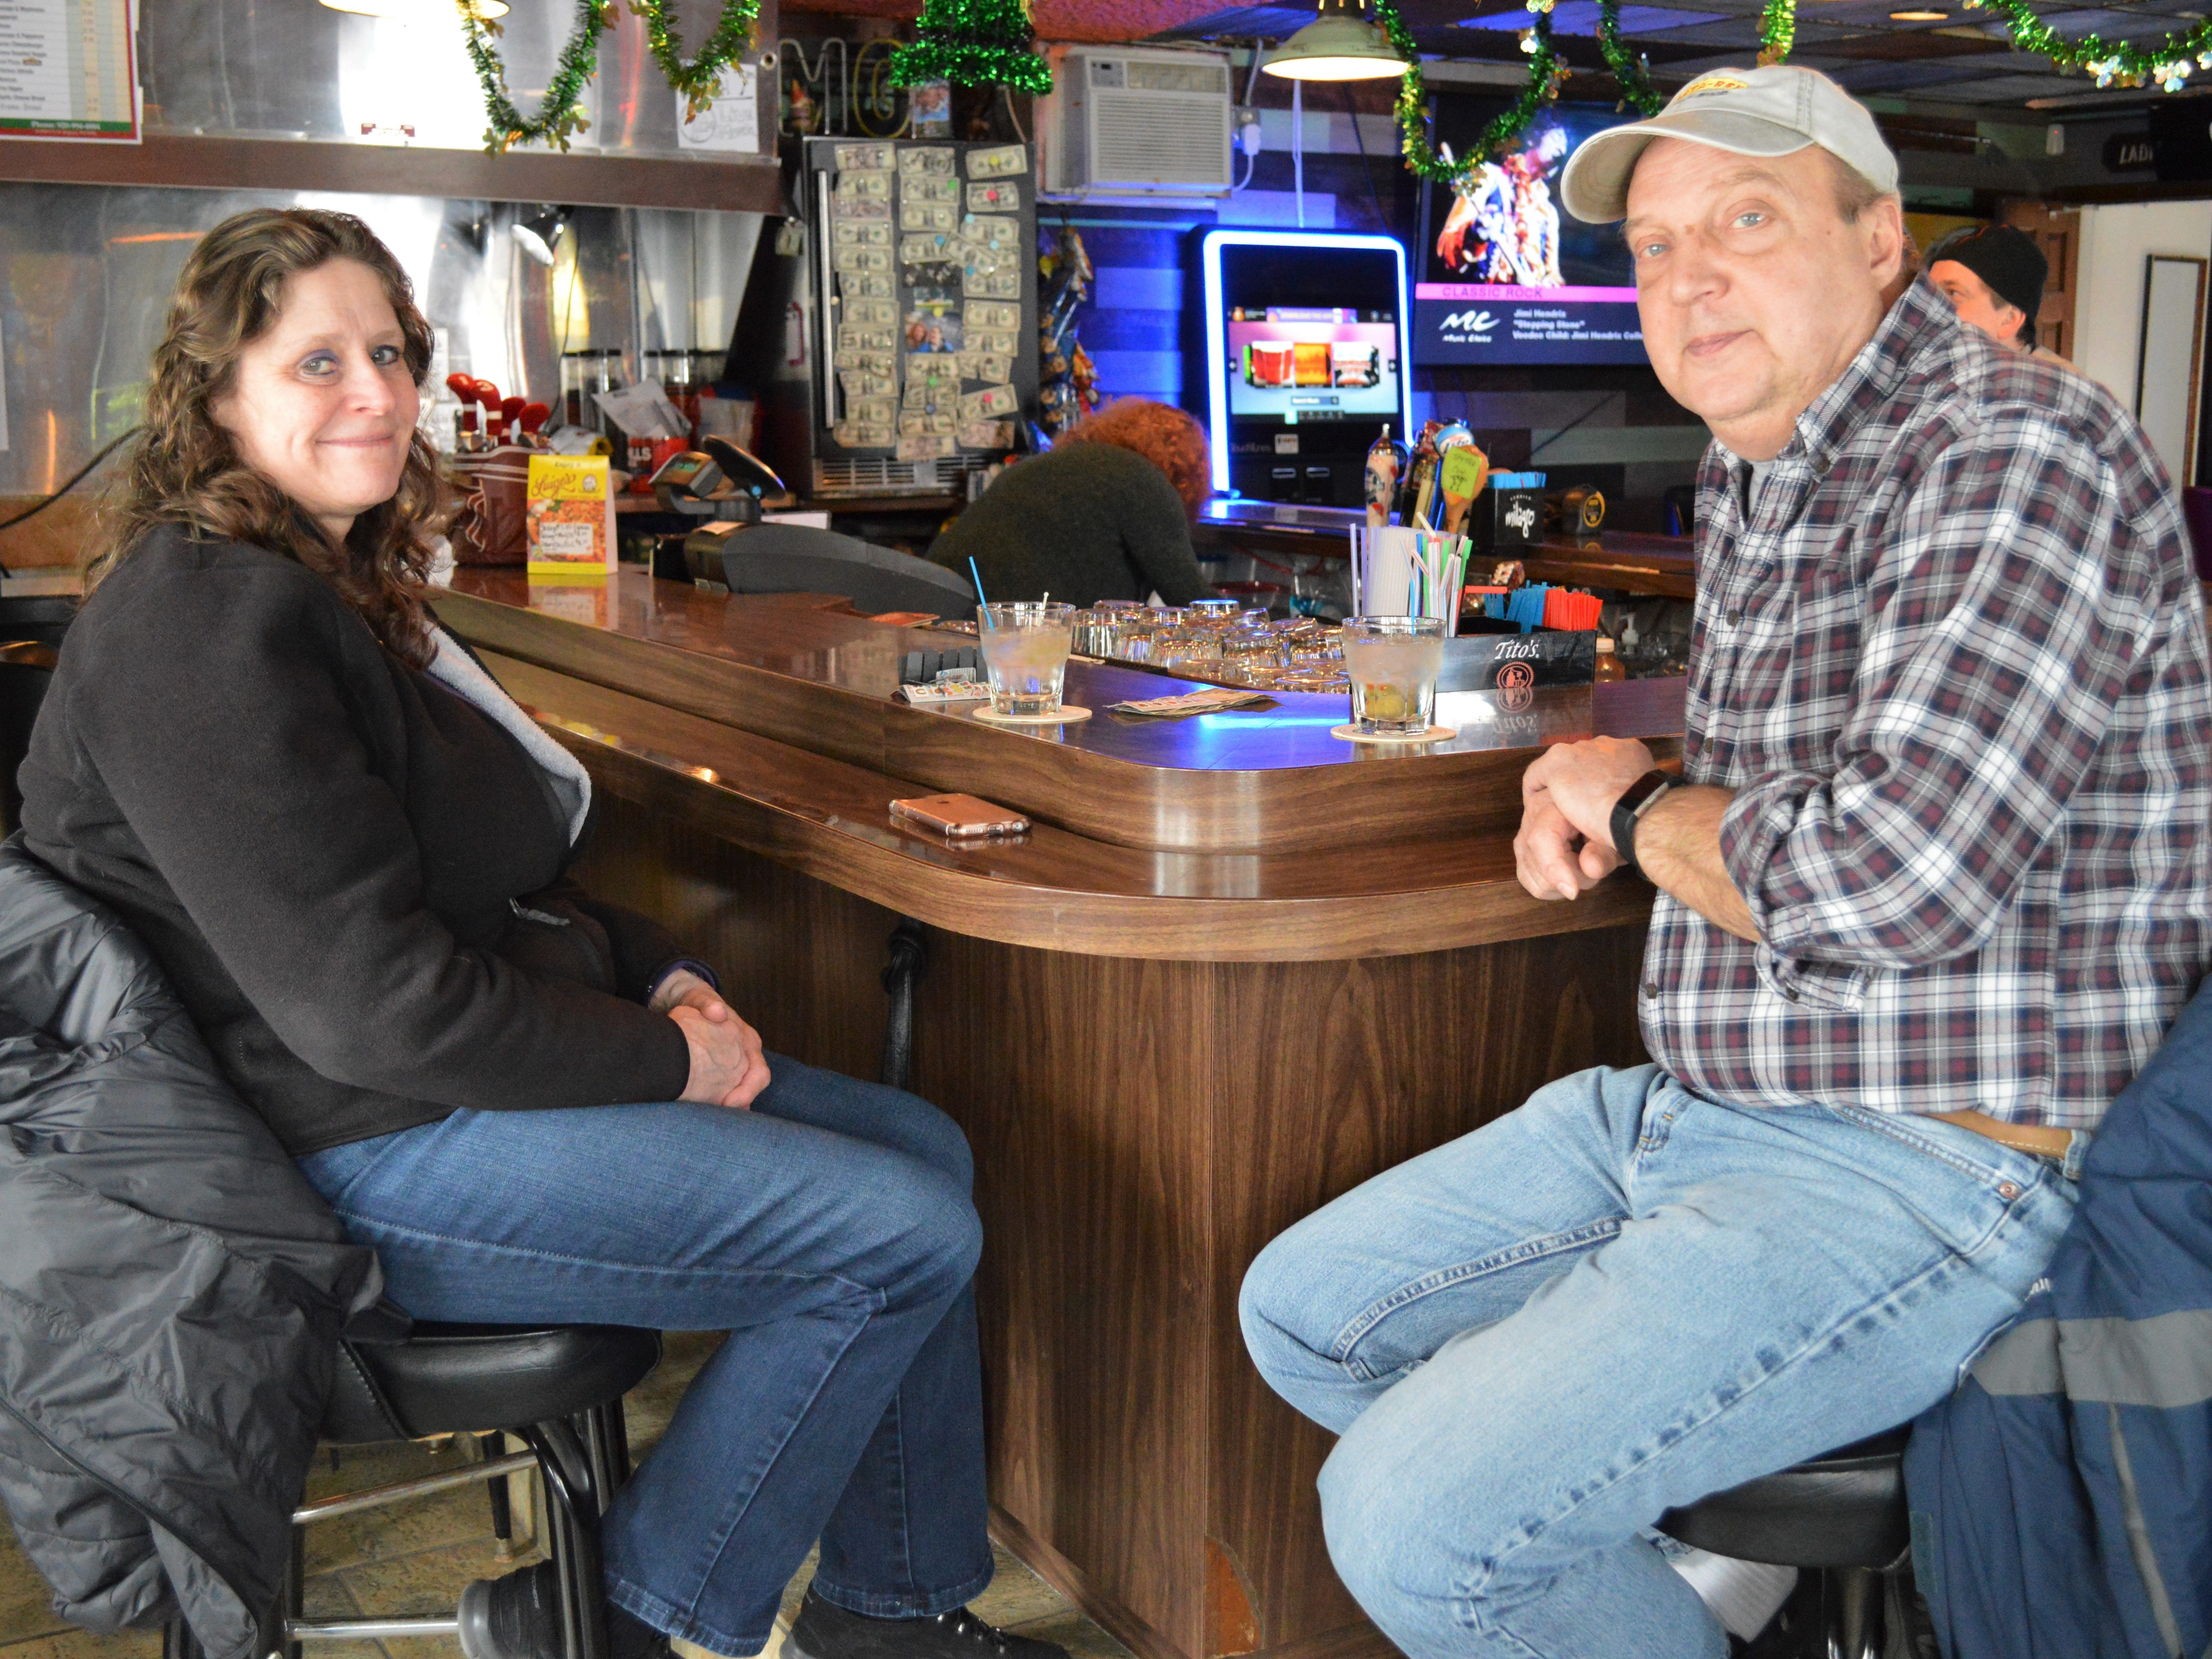 Customer Margie Hintz said Mary Pakula, owner of Mary's Caddyshack in New Berlin, is doing all the right things for the bar. Margie and her husband, Greg, are regulars.